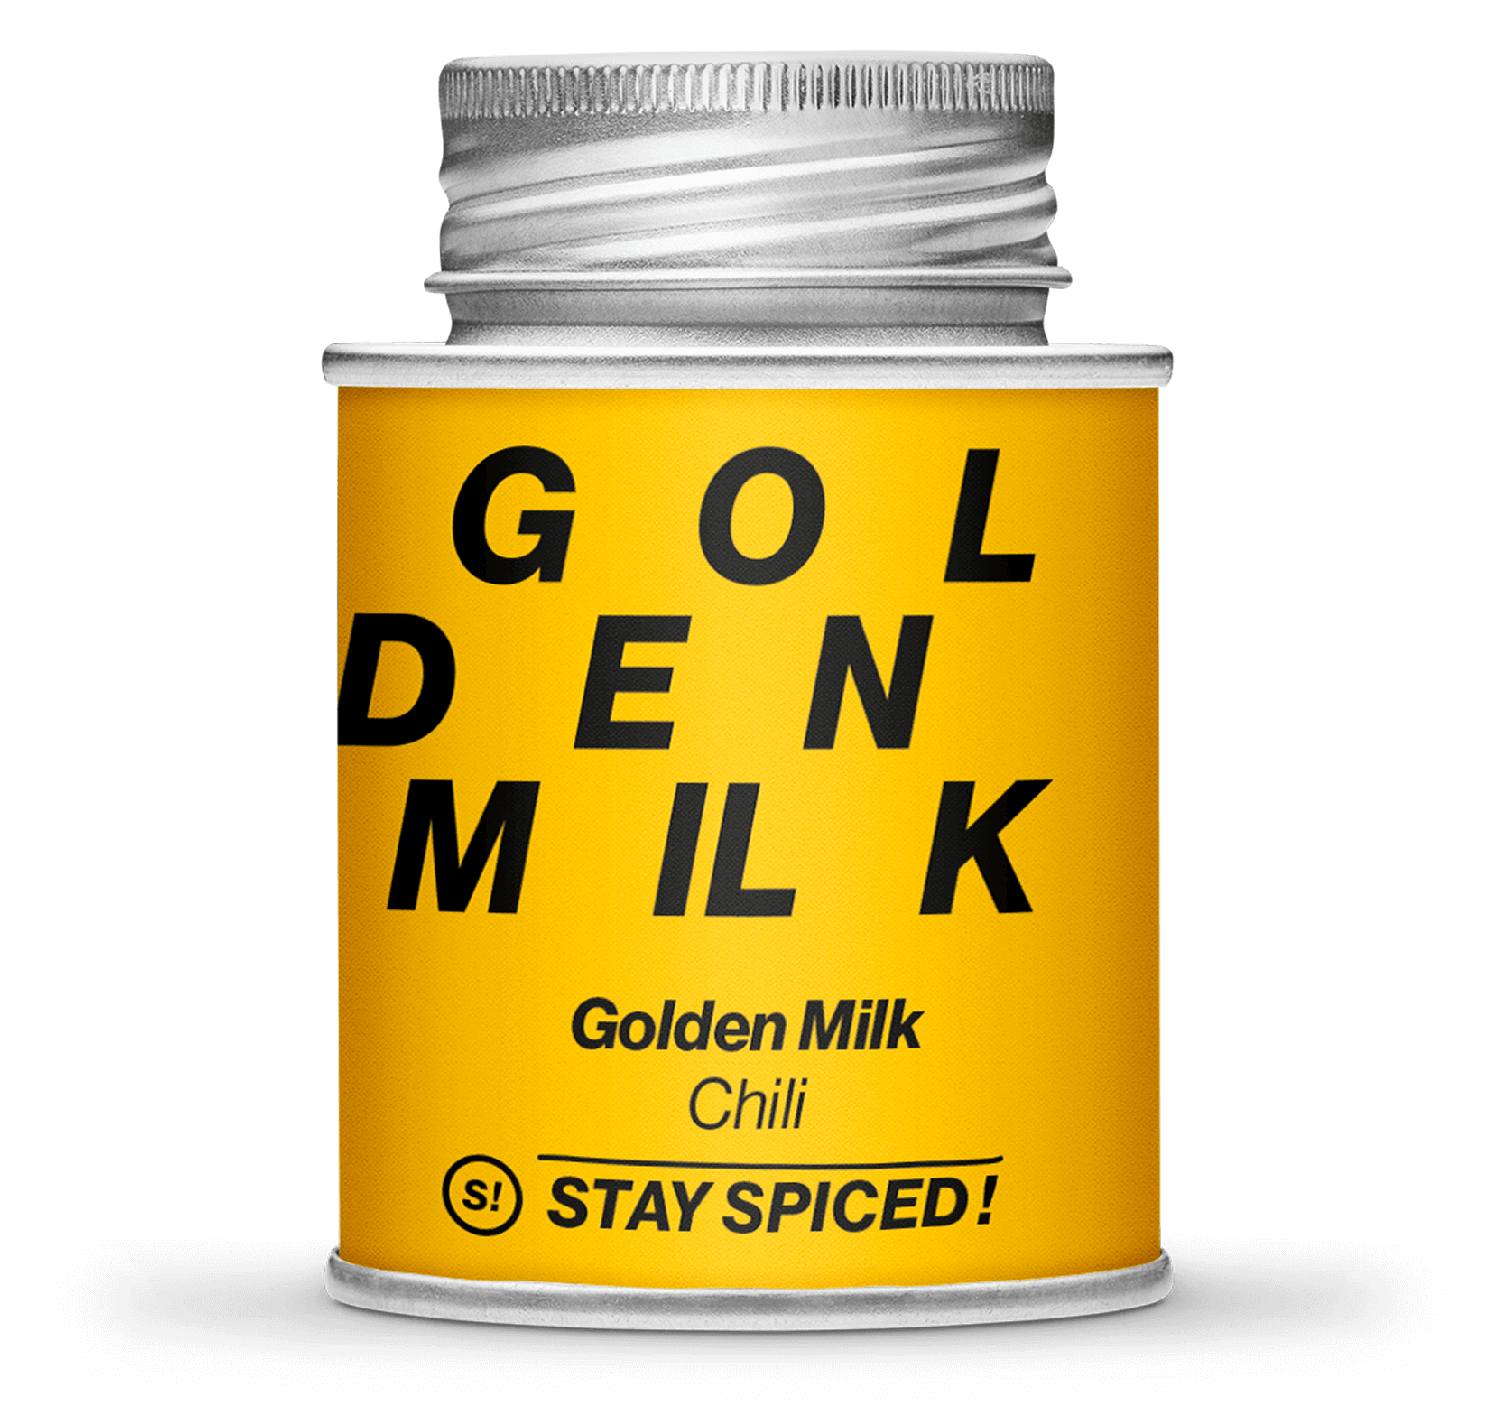 Golden Milk Chili